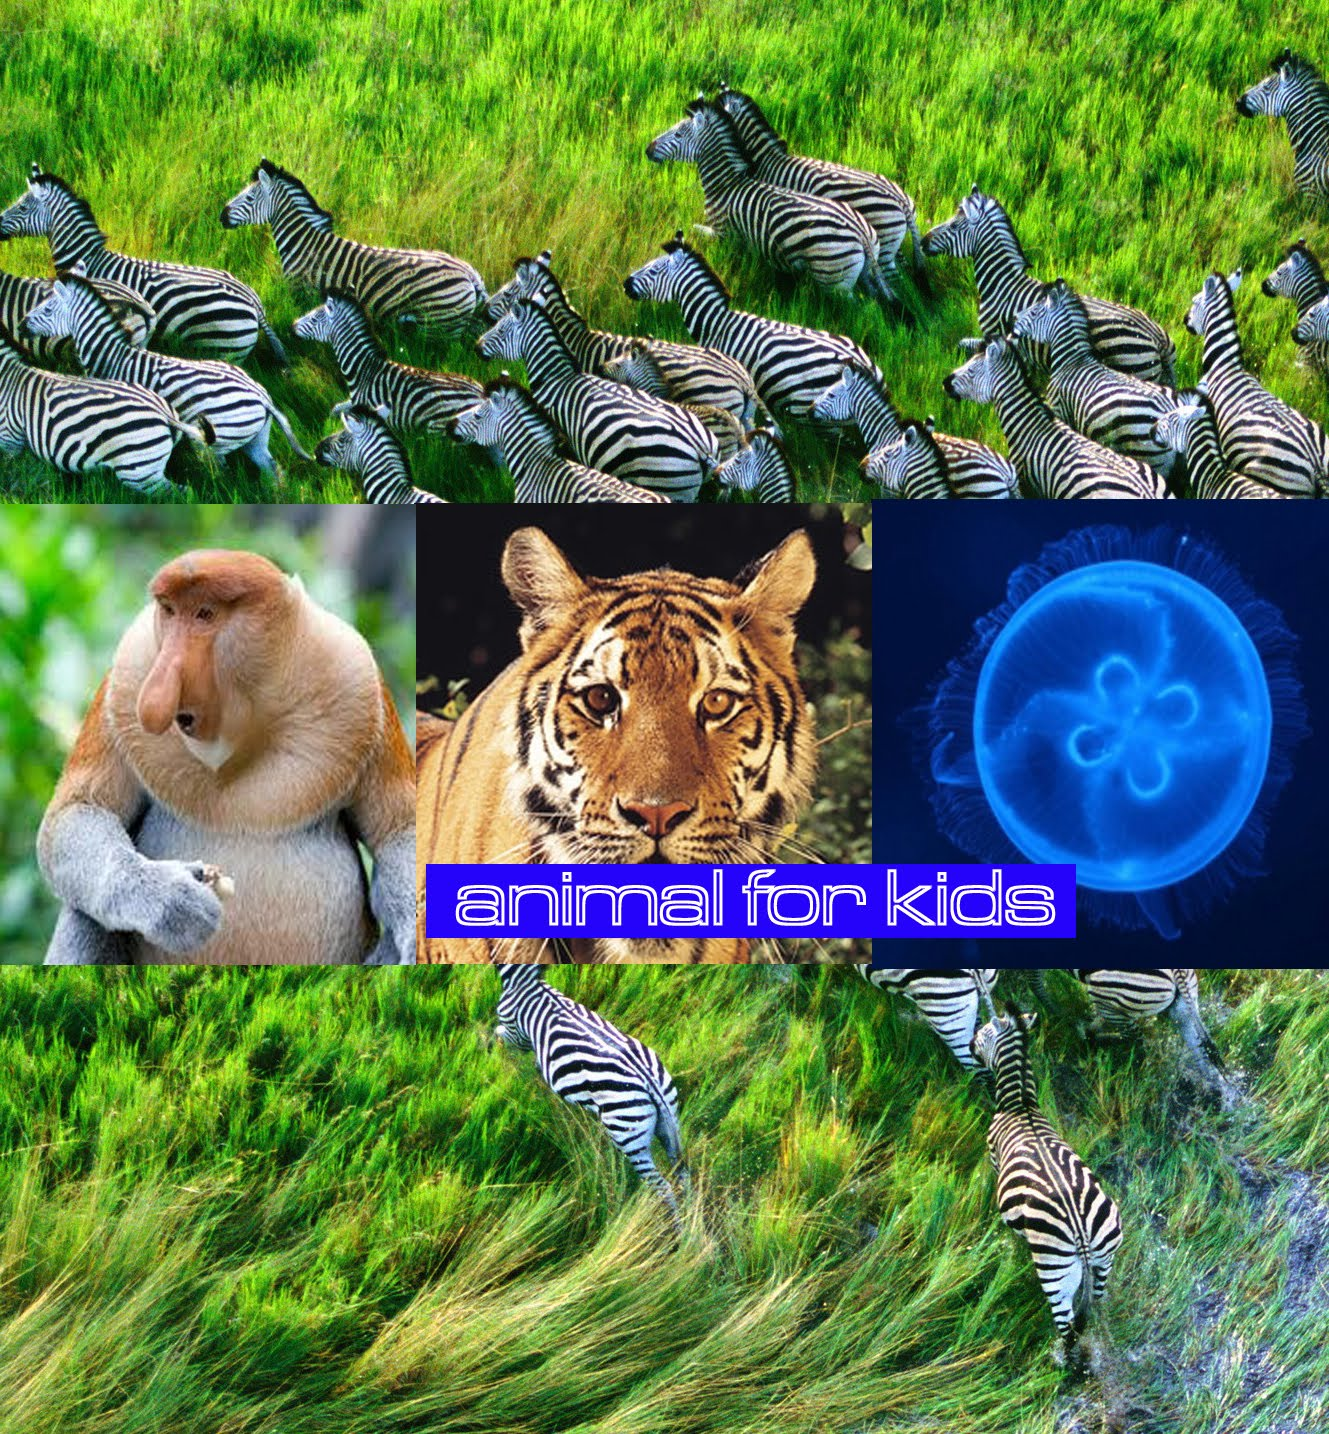 Animal for Kids